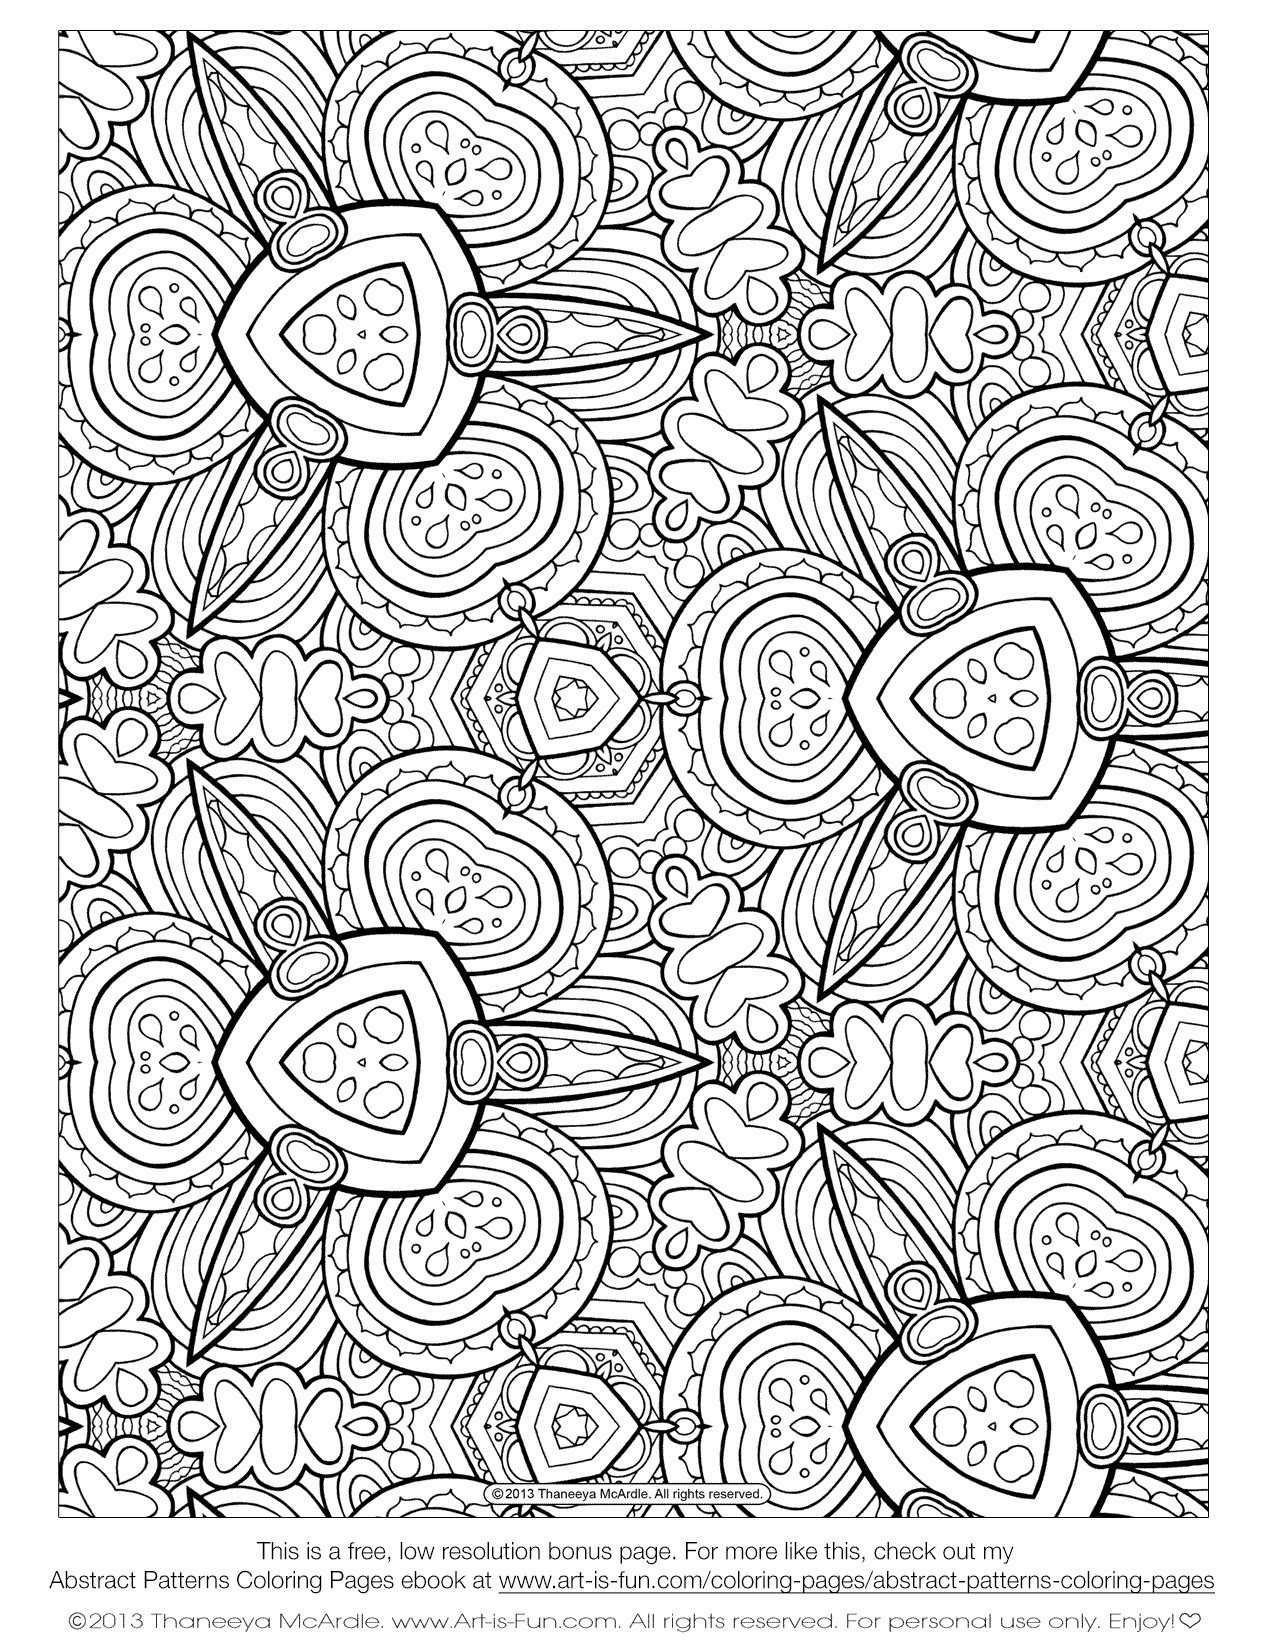 Coloring Pages : Free Printable Coloring Pages Adults Only Swear - Free Printable Coloring Pages For Adults Only